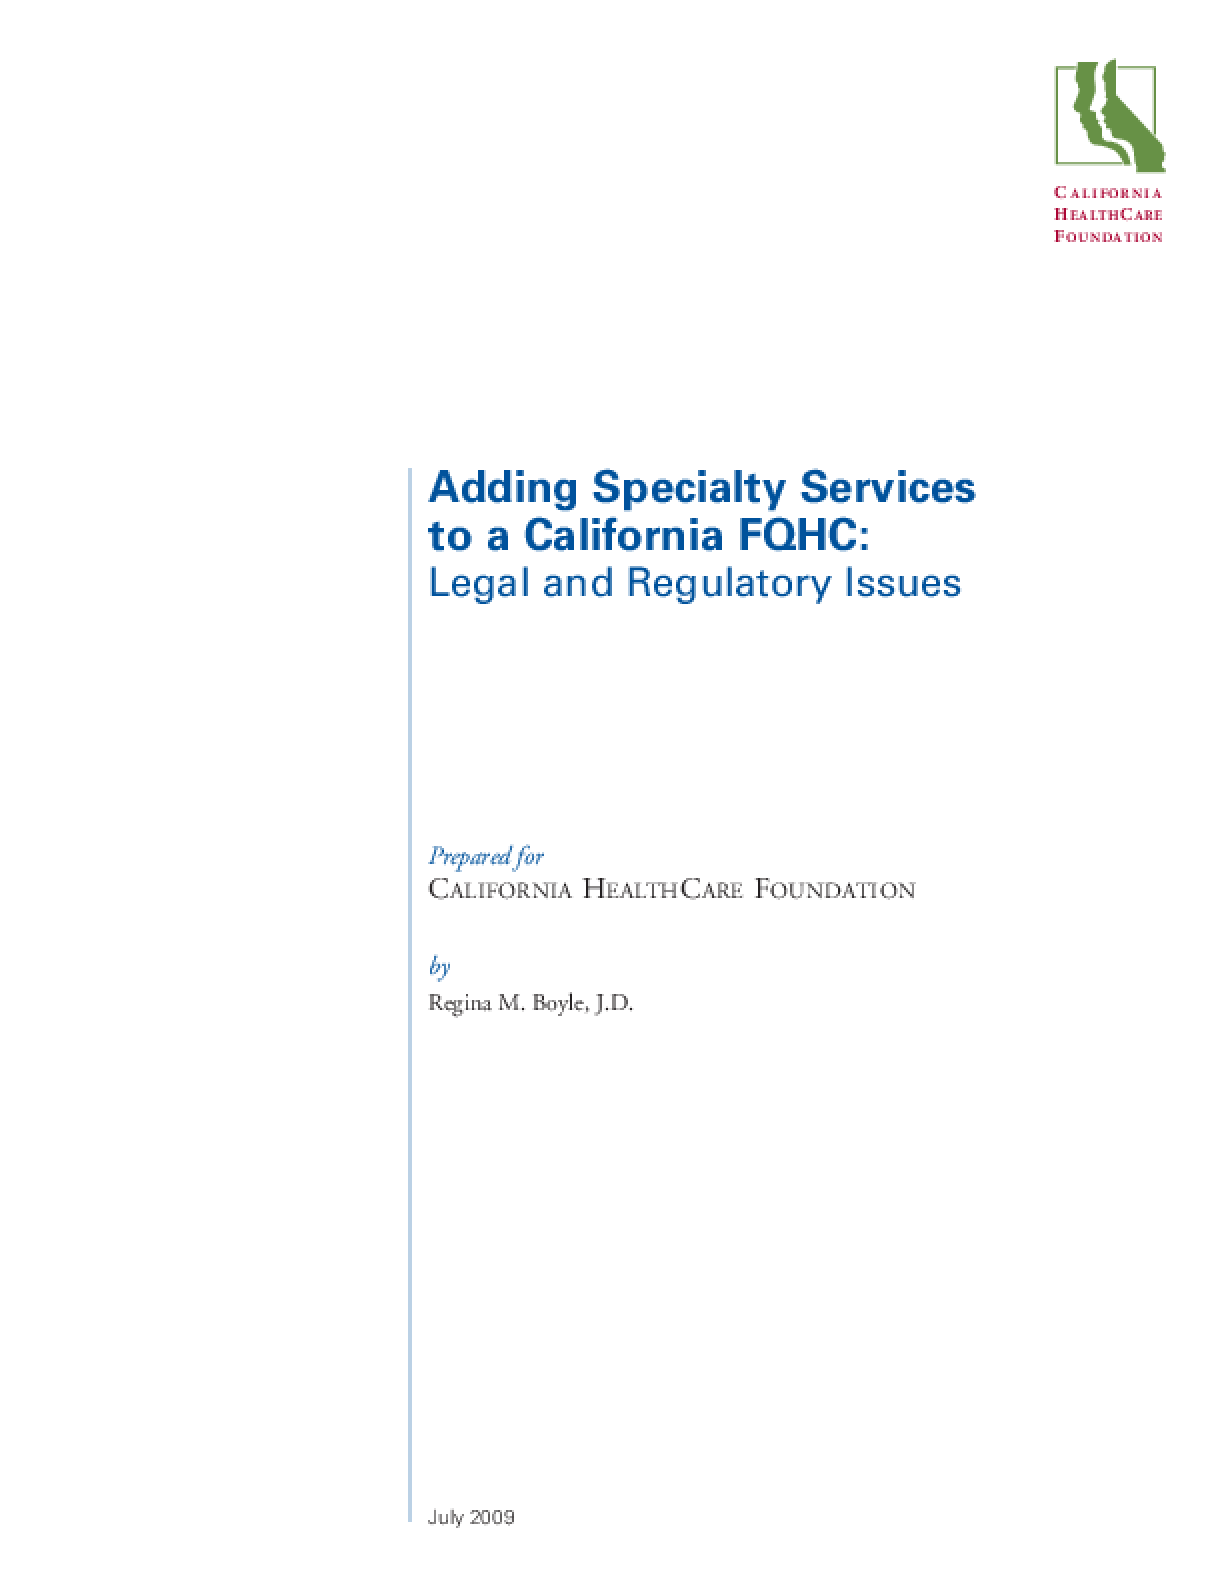 Adding Specialty Services to a California FQHC: Legal and Regulatory Issues